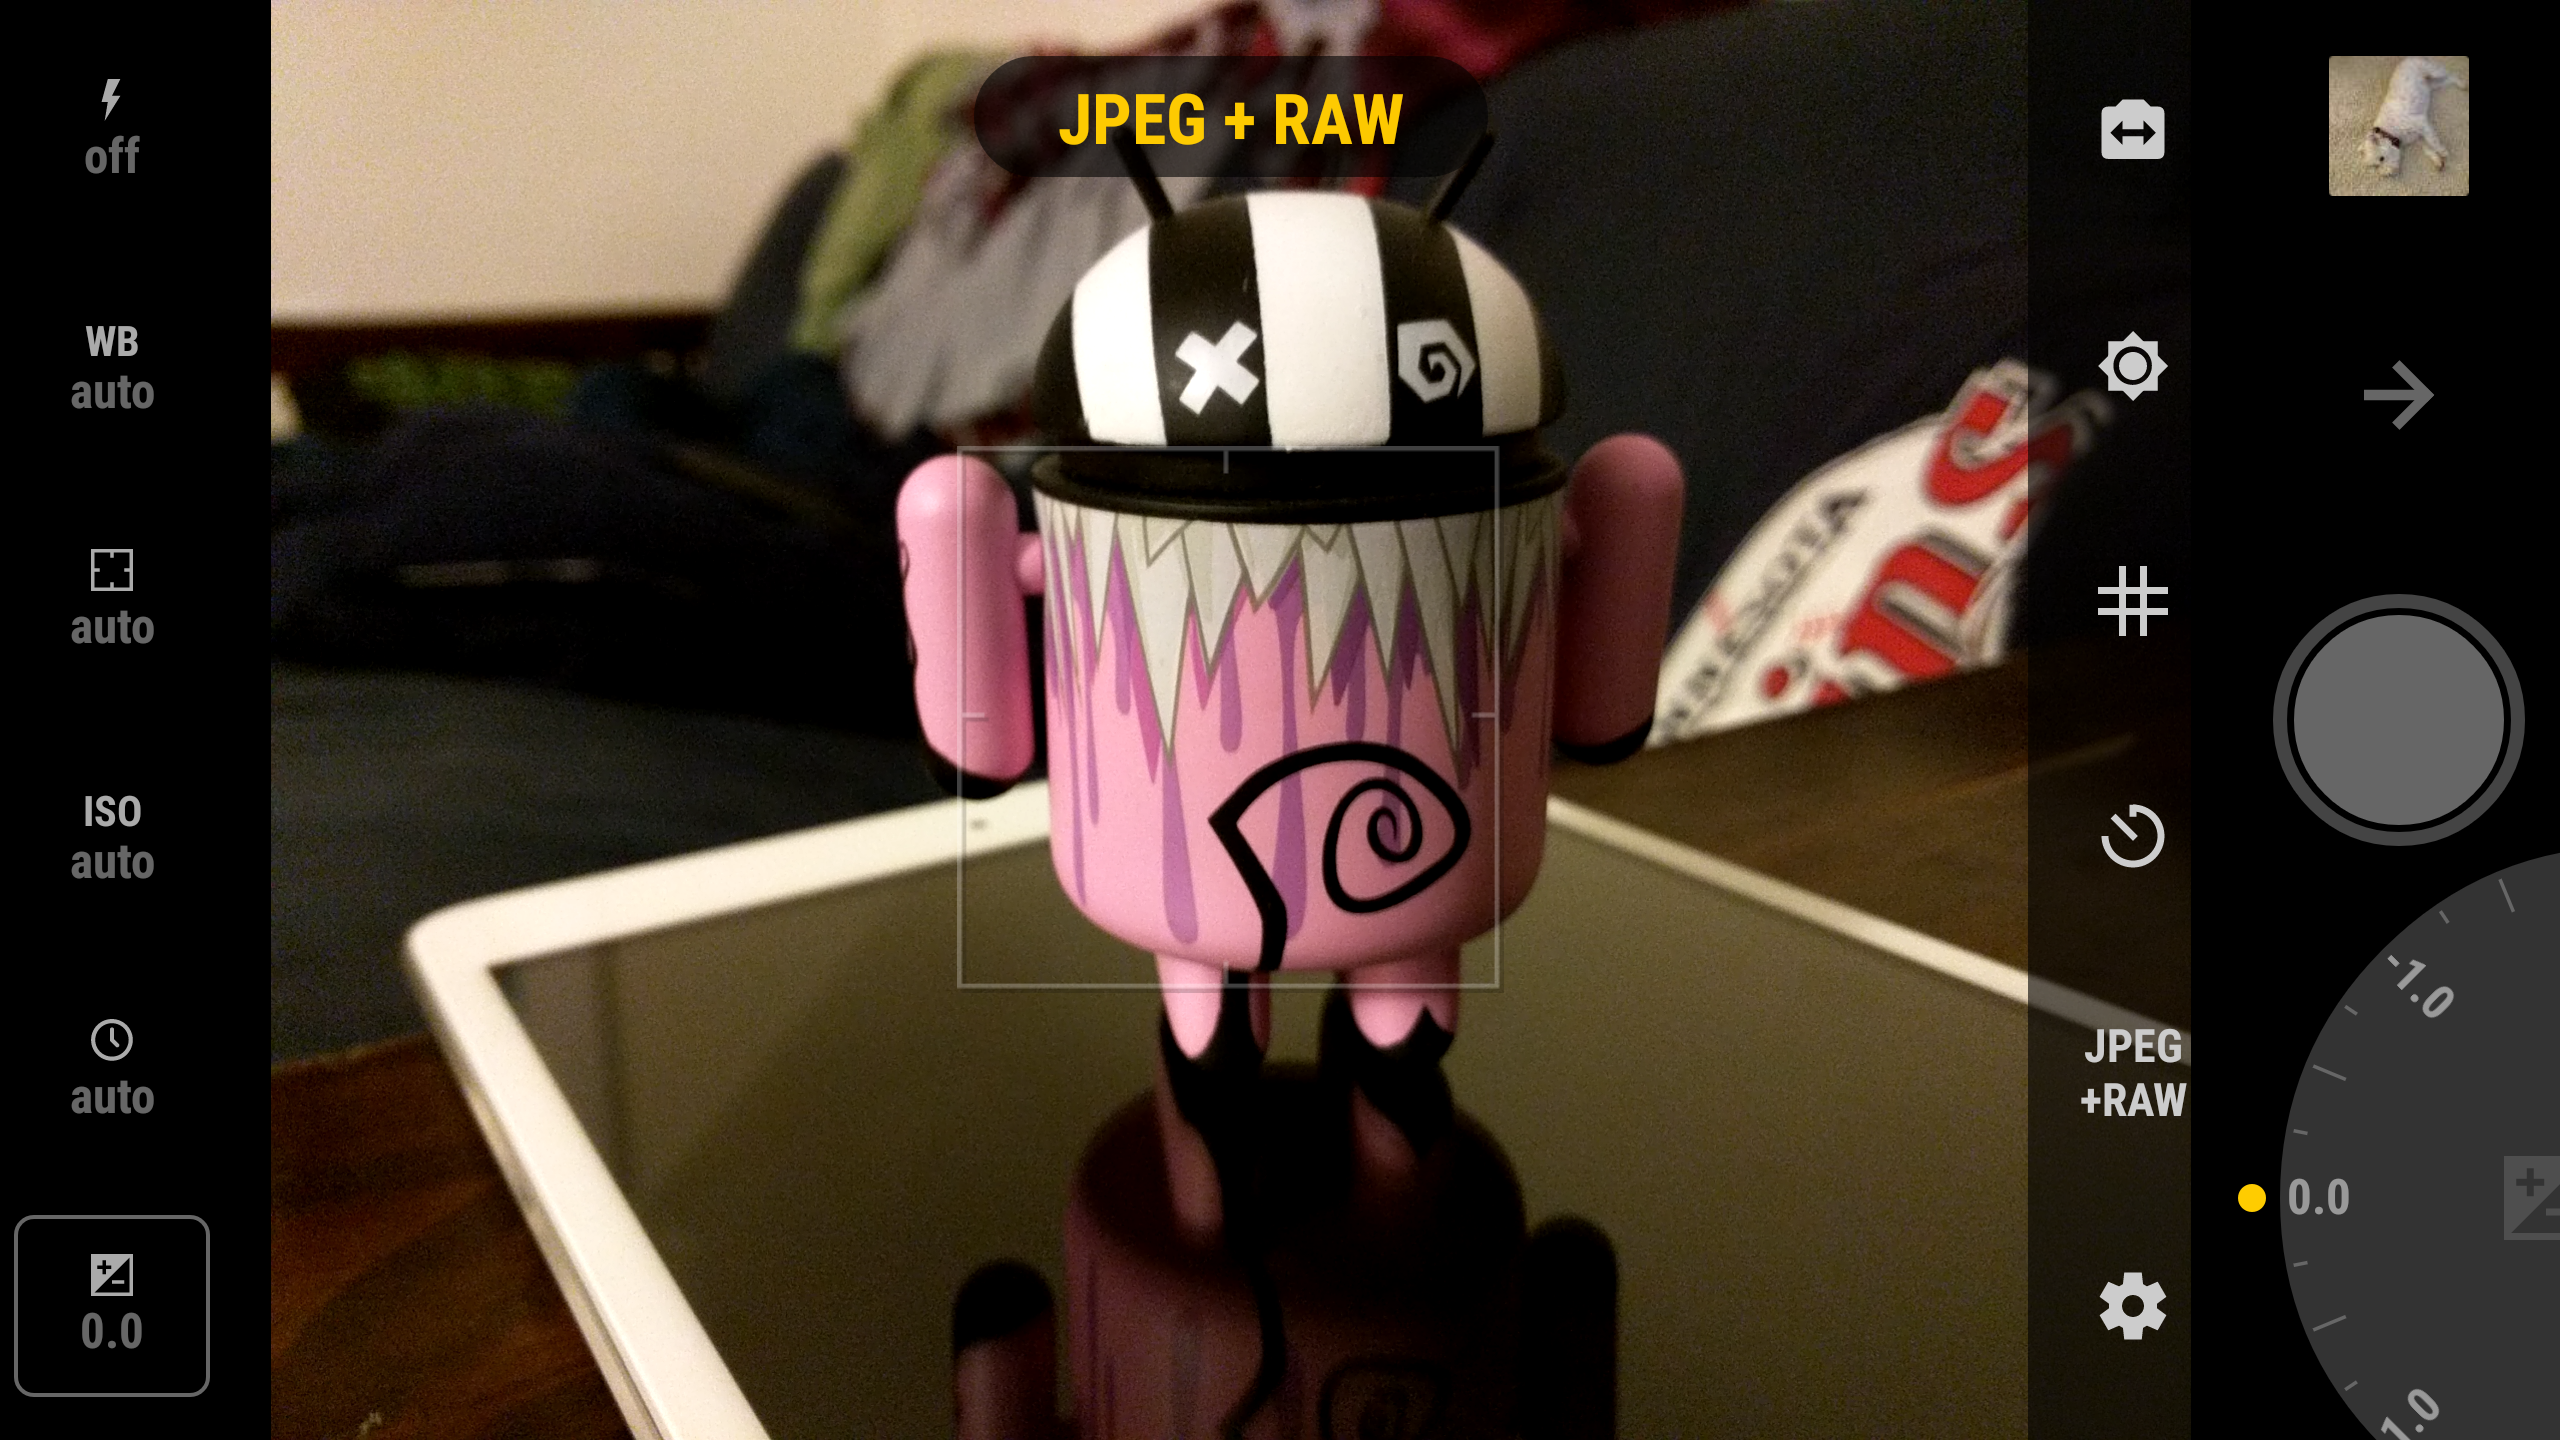 ERAW photography on Android - Tested